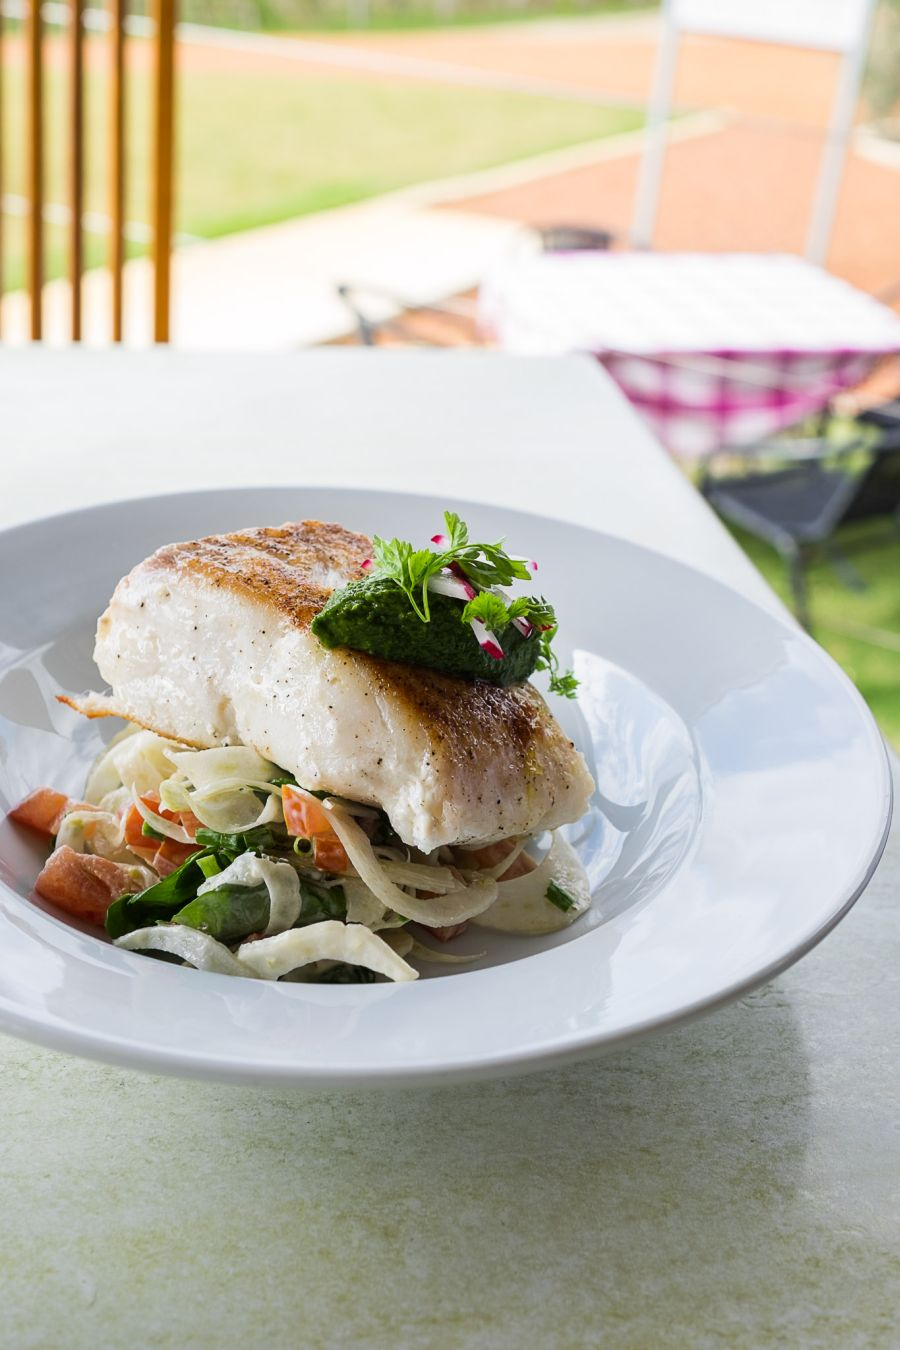 Fish of the day ($market price) - fennel and watercress salad, salsa verde